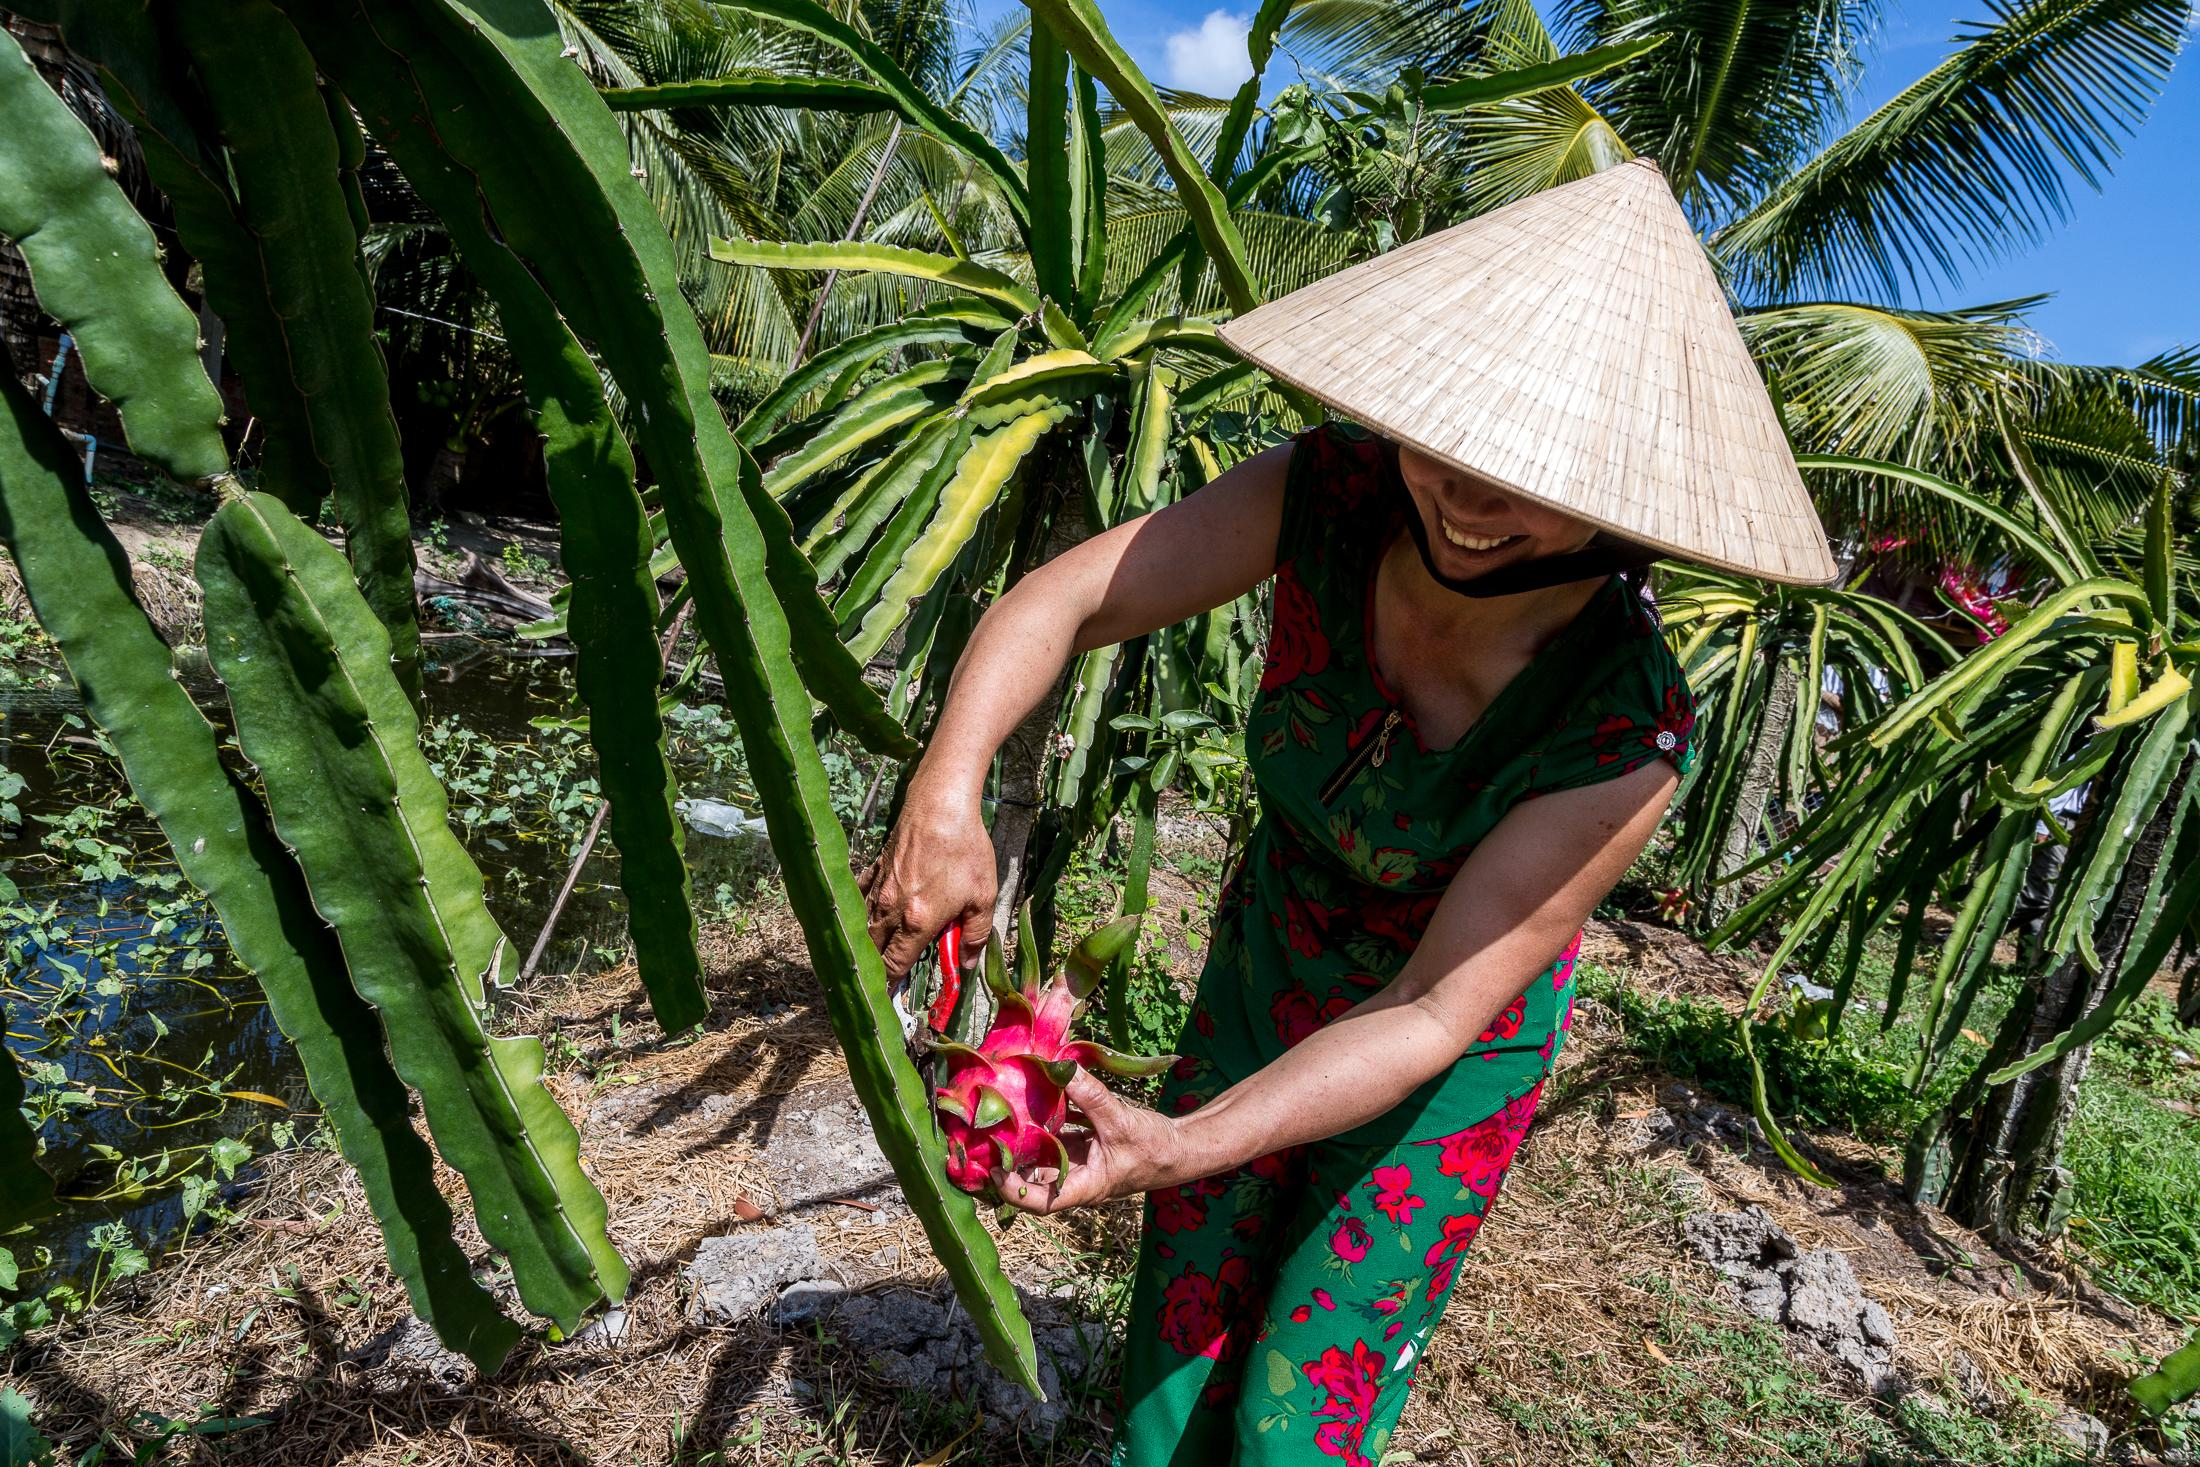 TRA VINH PROVINCE, VIETNAM - DECEMBER 01, 2015: Nguyen Thi Tang (47) cuts dragon fruits from a dragon fruit plant in a field where the family grows fruit outside their home on December 01, 2015 in Phu Hung 1 Village, Tra Vinh Province, Vietnam. Photo: © Omar Havana for Heifer International